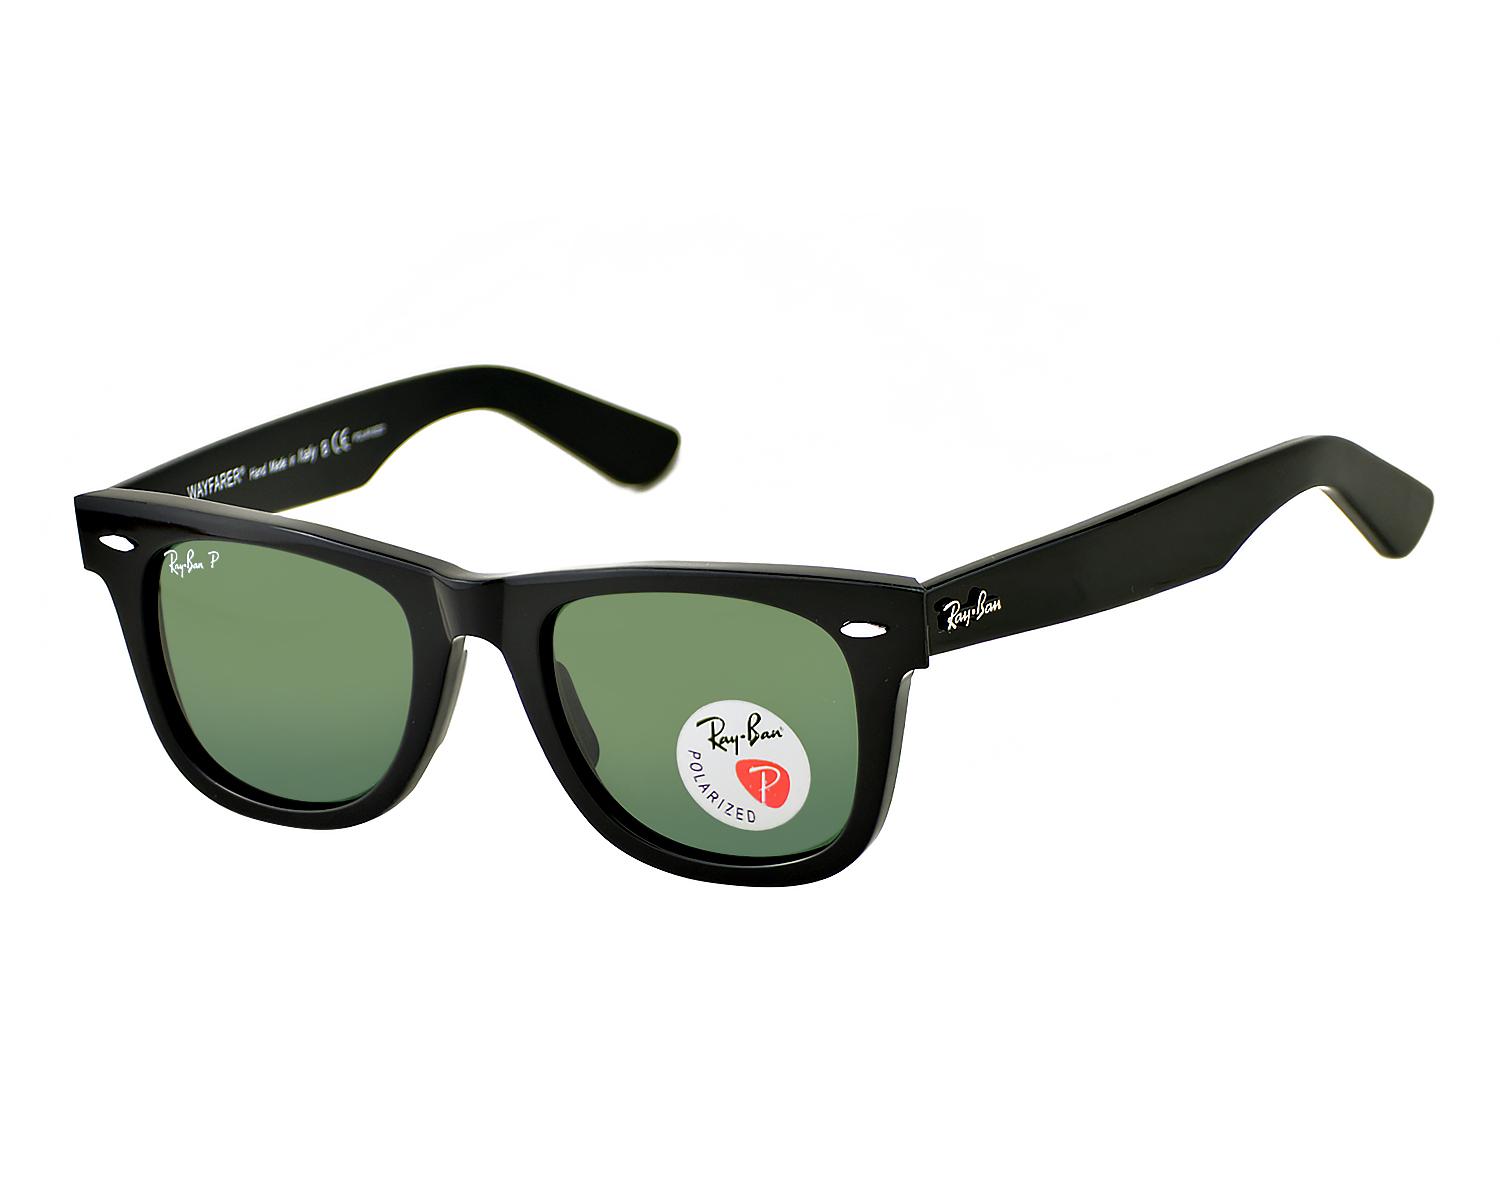 4de82aedf76 Ray-Ban RB2140 Original Wayfarer Classics 901 58 Black Frame Polarized  Green Classic G-15 Lenses Unisex Sunglasses 50mm